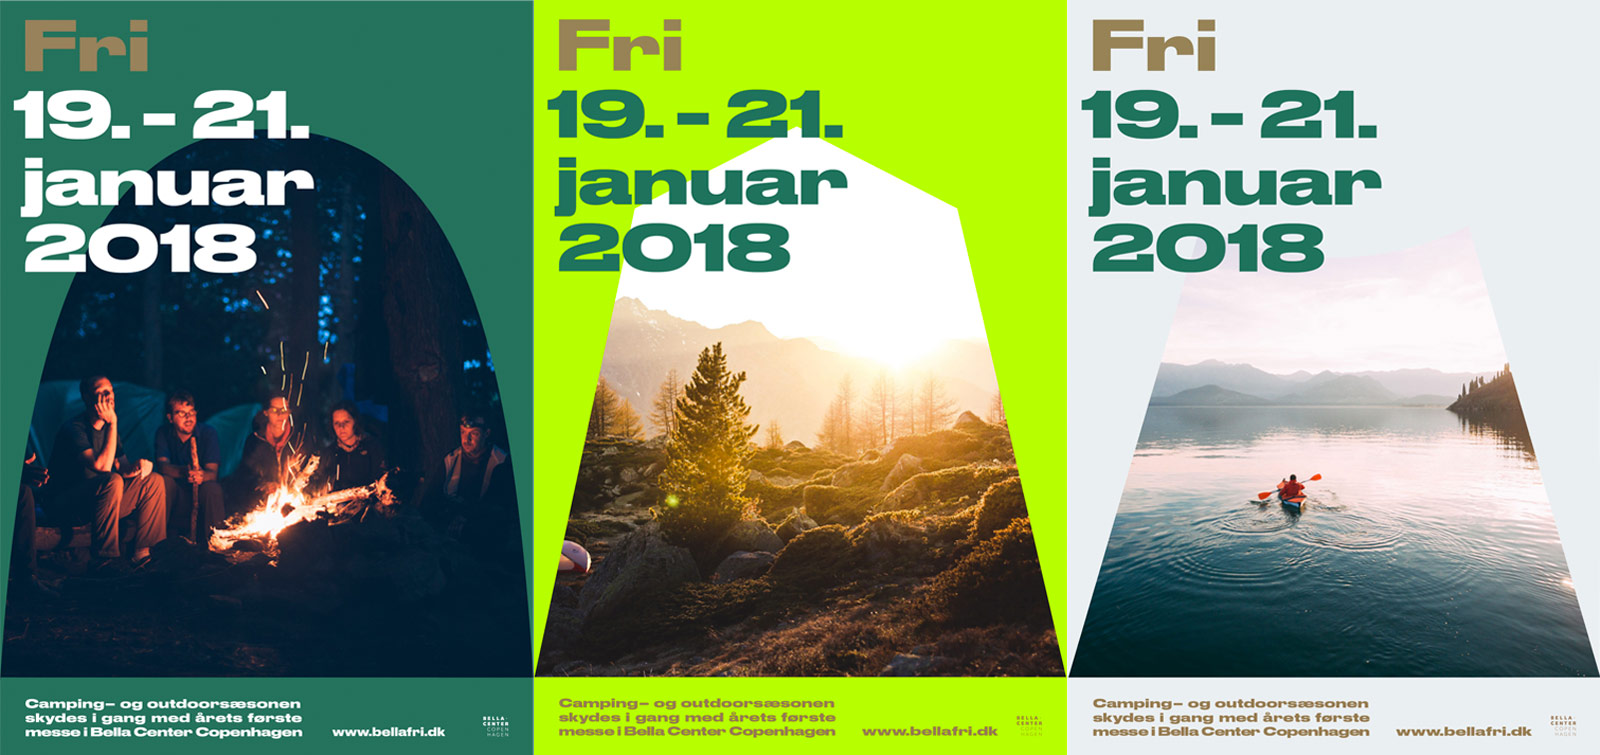 Fri identity design by Double